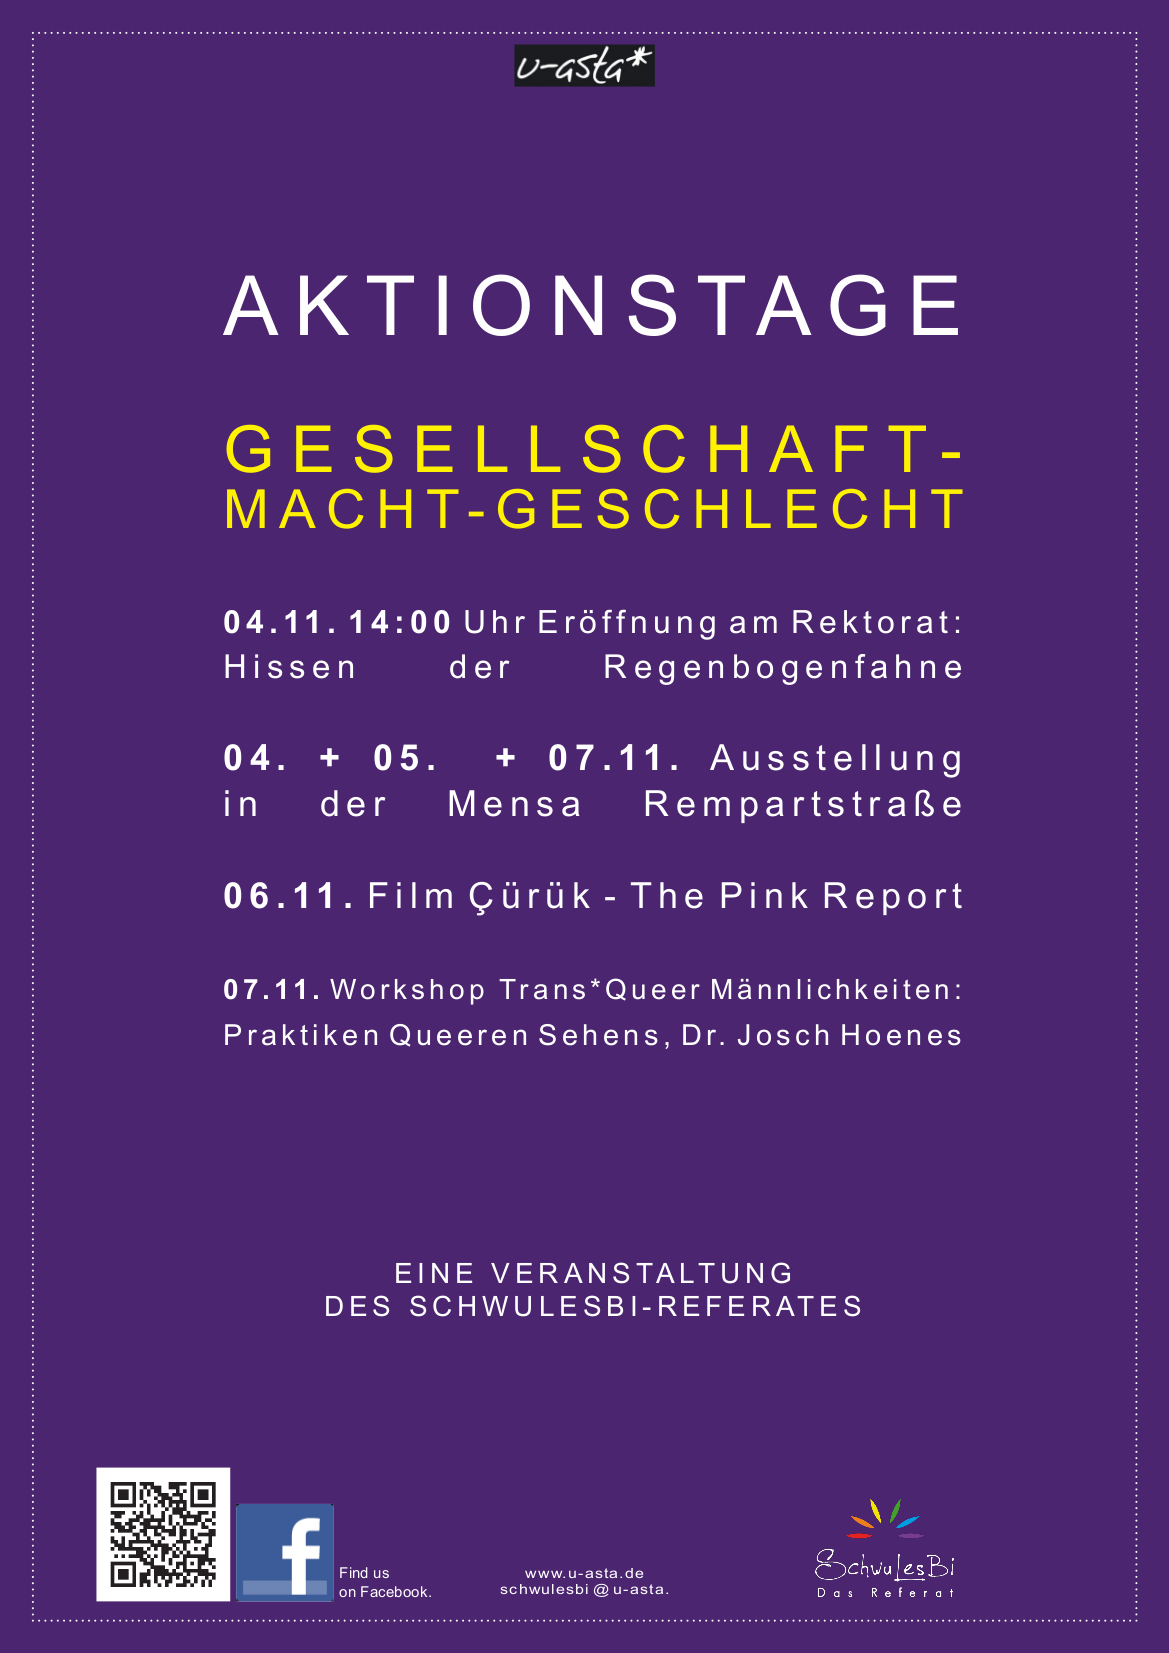 plakate der aktionstage im november 2013